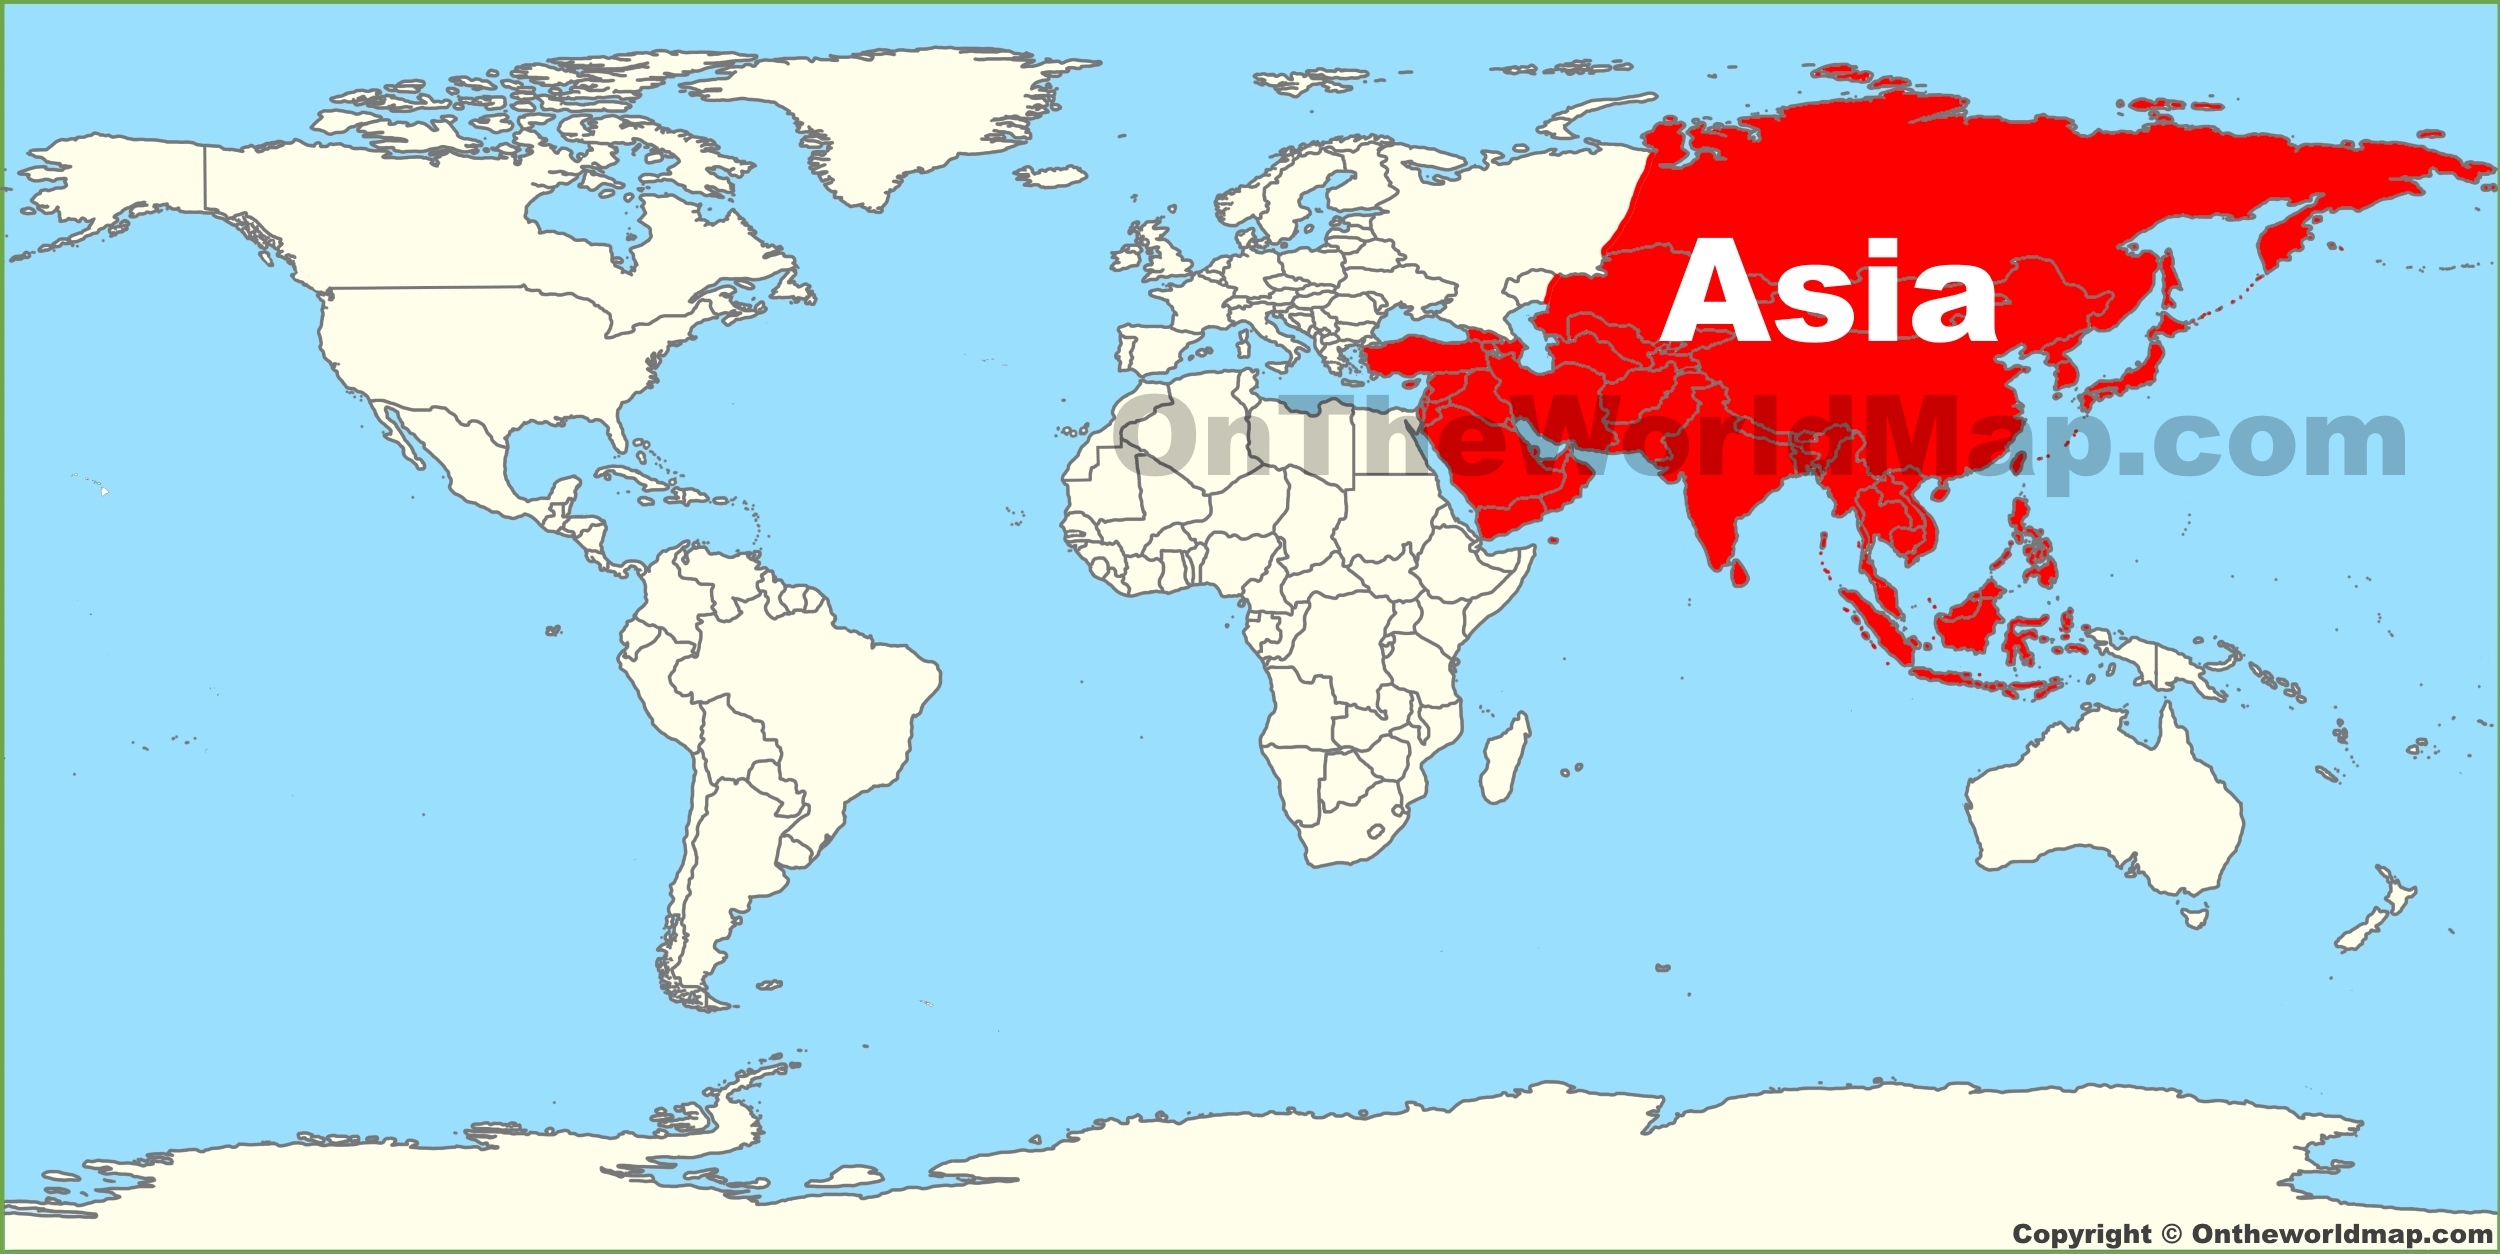 Asia location on the World Map